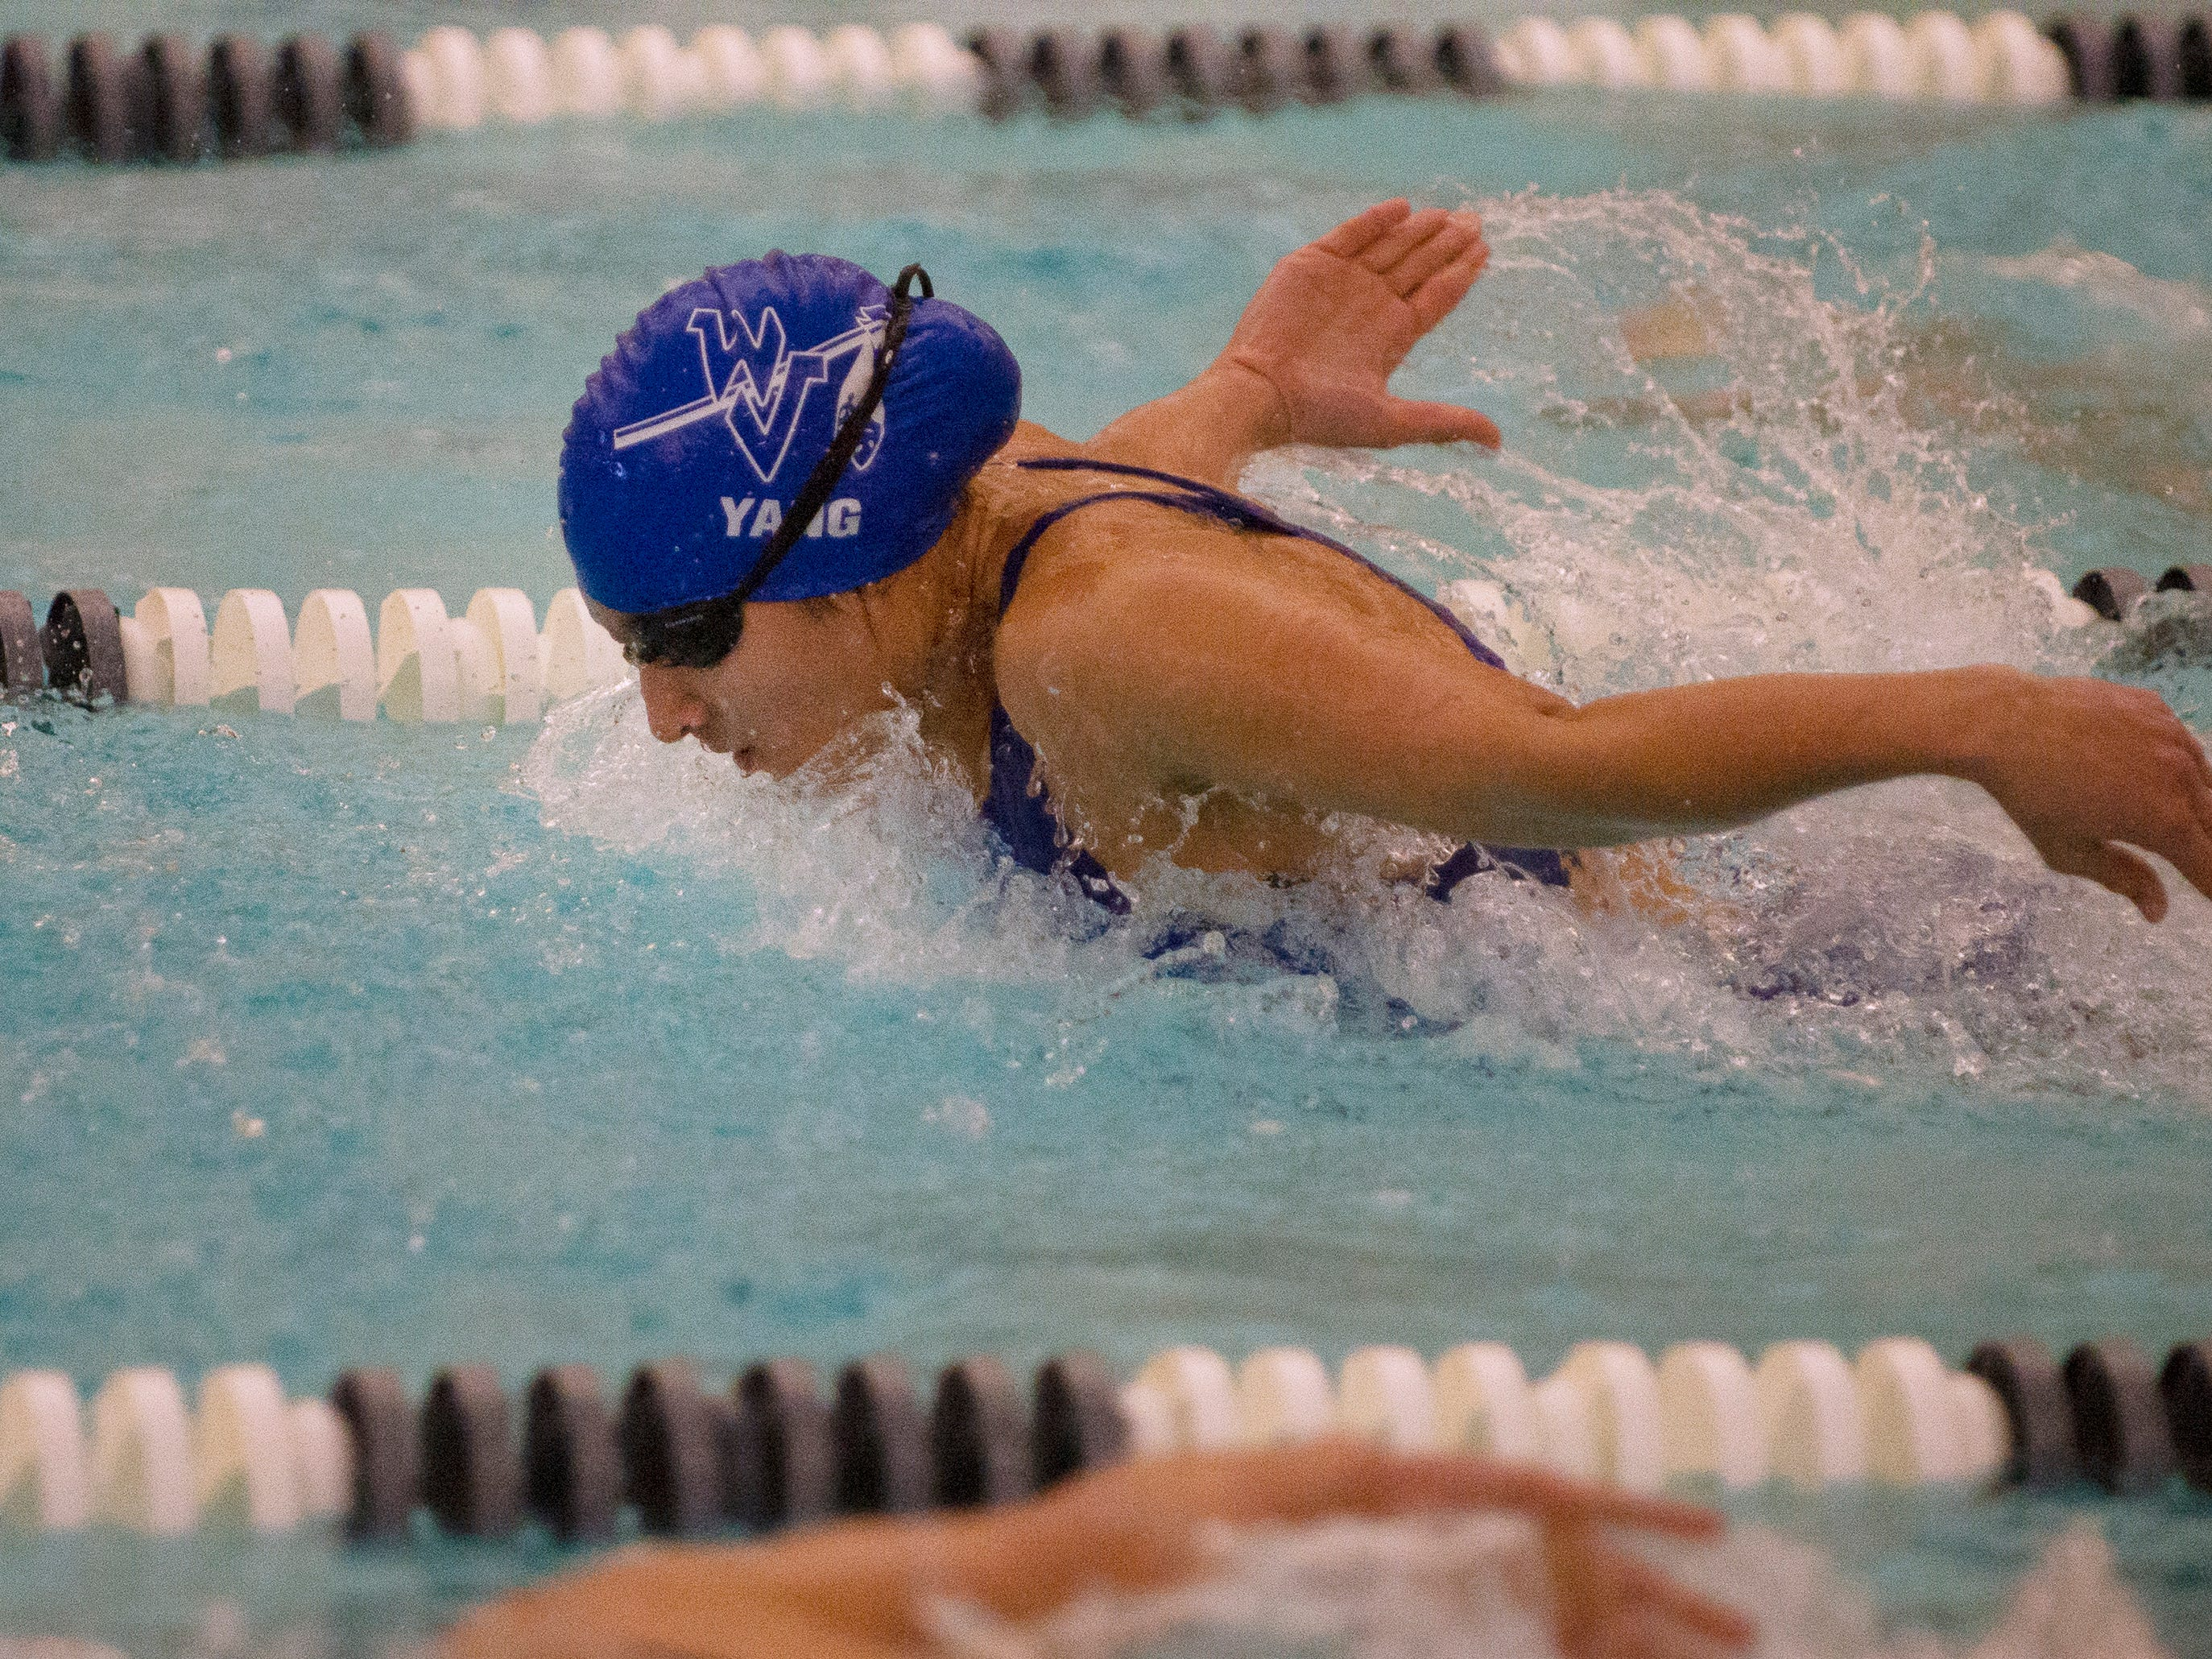 Grace Sendak of Wayne Valley competes in the 100 yard butterfly, which she finished in second place, during the boys and girls swimming meet between Northern Highlands and Wayne Valley at the Wayne YMCA in Wayne on 12/04/18.